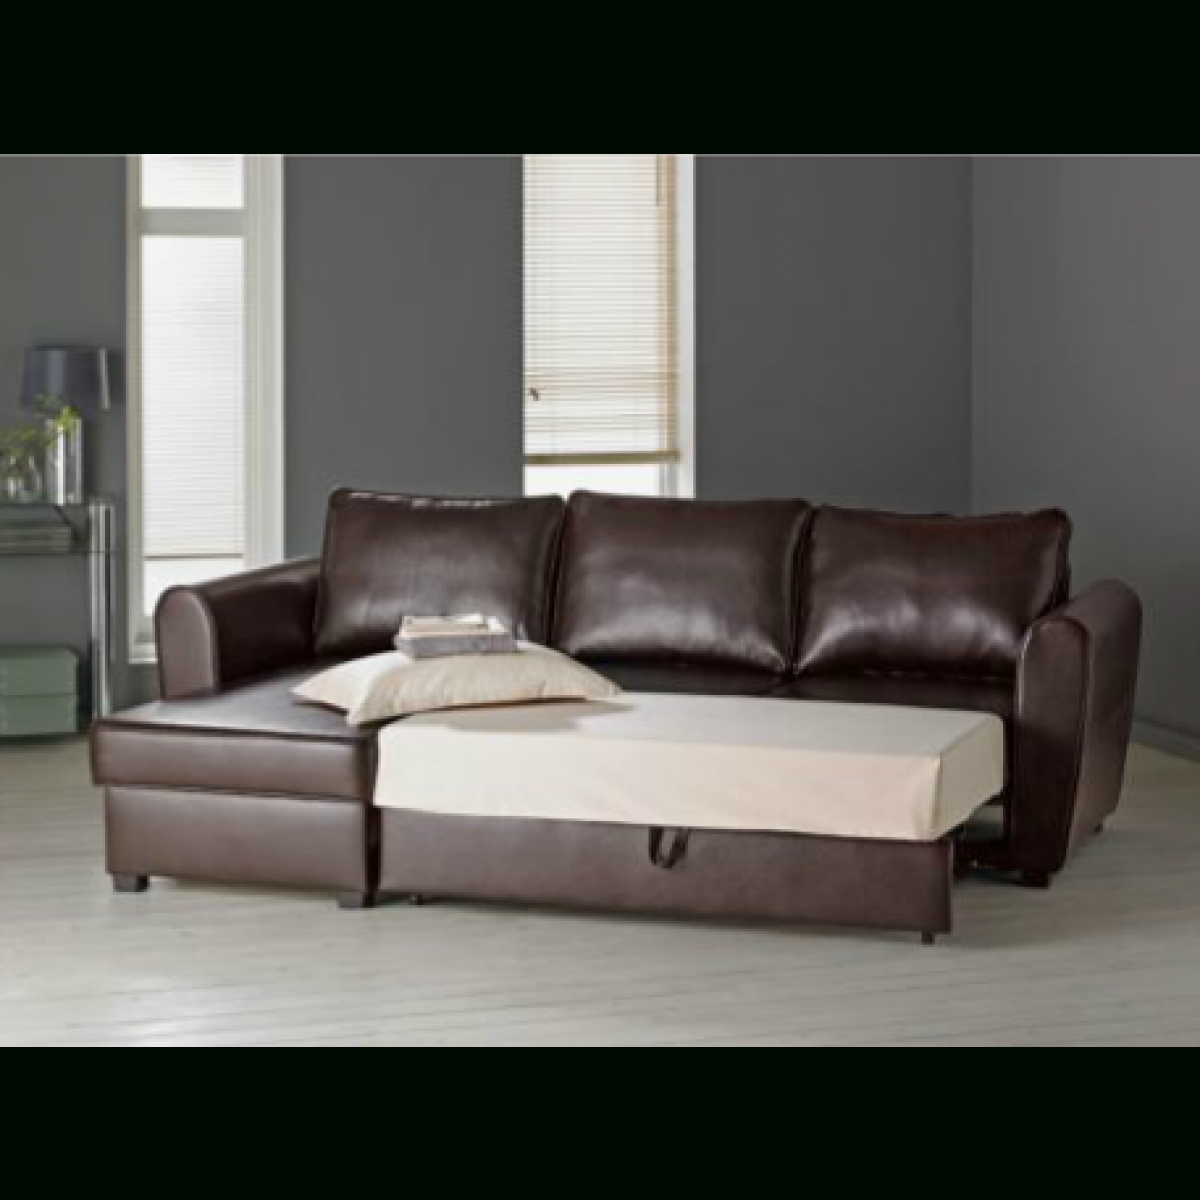 Chaise Sofa Beds With Storage Inside Well Liked Siena Leather Effect Corner Sofa Bed With Storage  Chocolate (View 3 of 15)